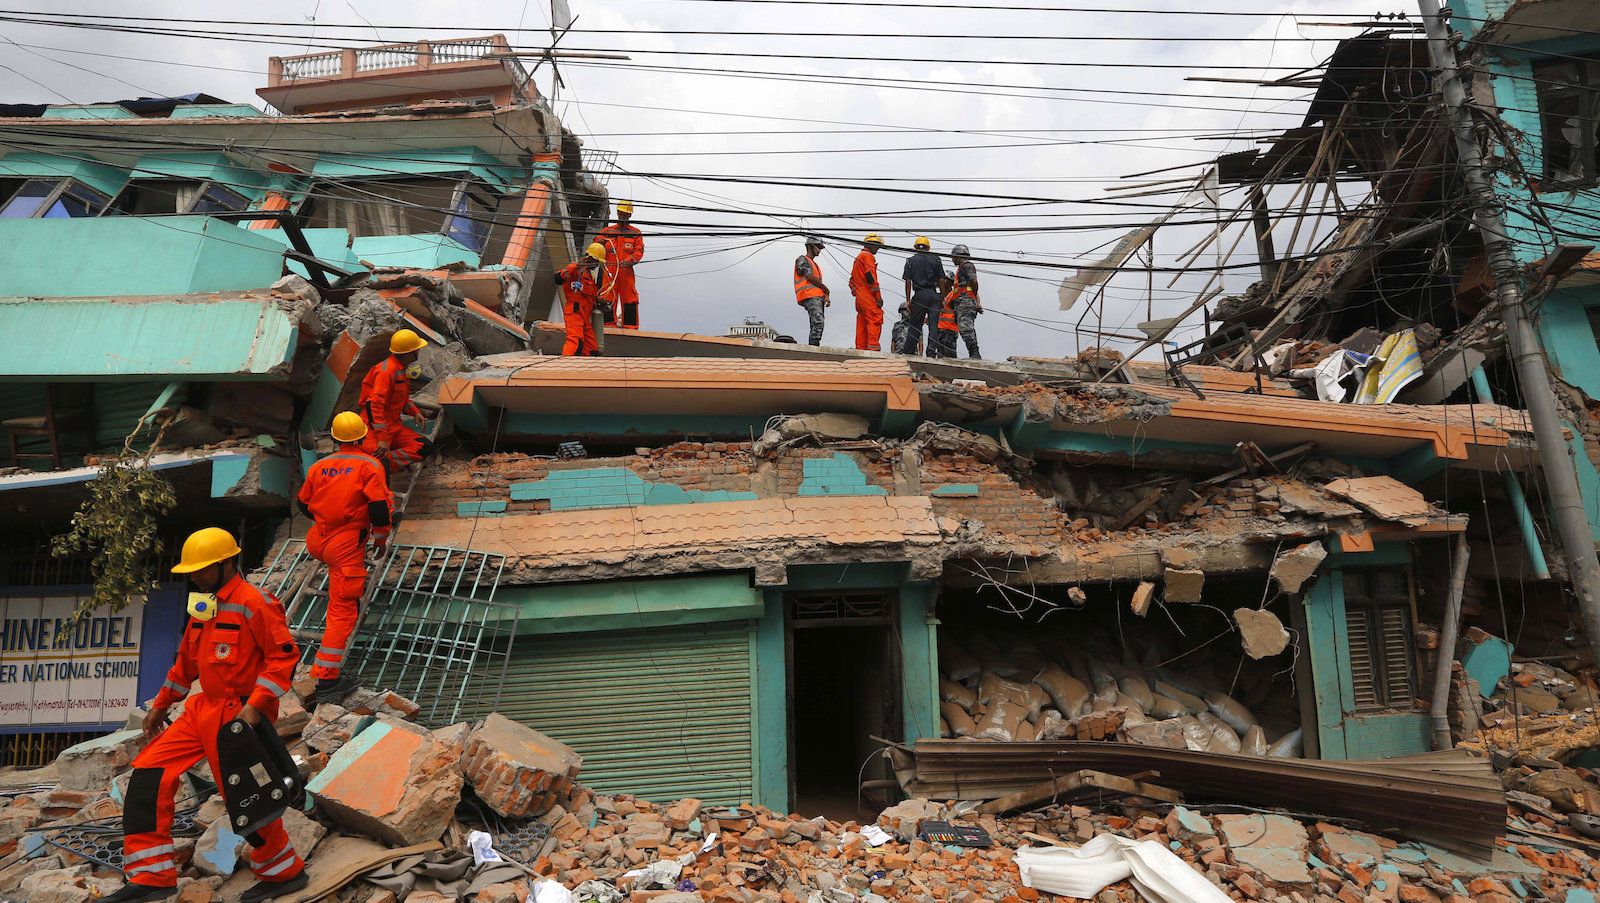 India's National Disaster Response Force personnel look for survivors in a building, in Kathmandu, Nepal, Sunday, April 26, 2015. Sleeping in the streets and shell-shocked, Nepalese cremated the dead and dug through rubble for the missing Sunday, a day after a massive Himalayan earthquake devastated the region and destroyed homes and infrastructure.